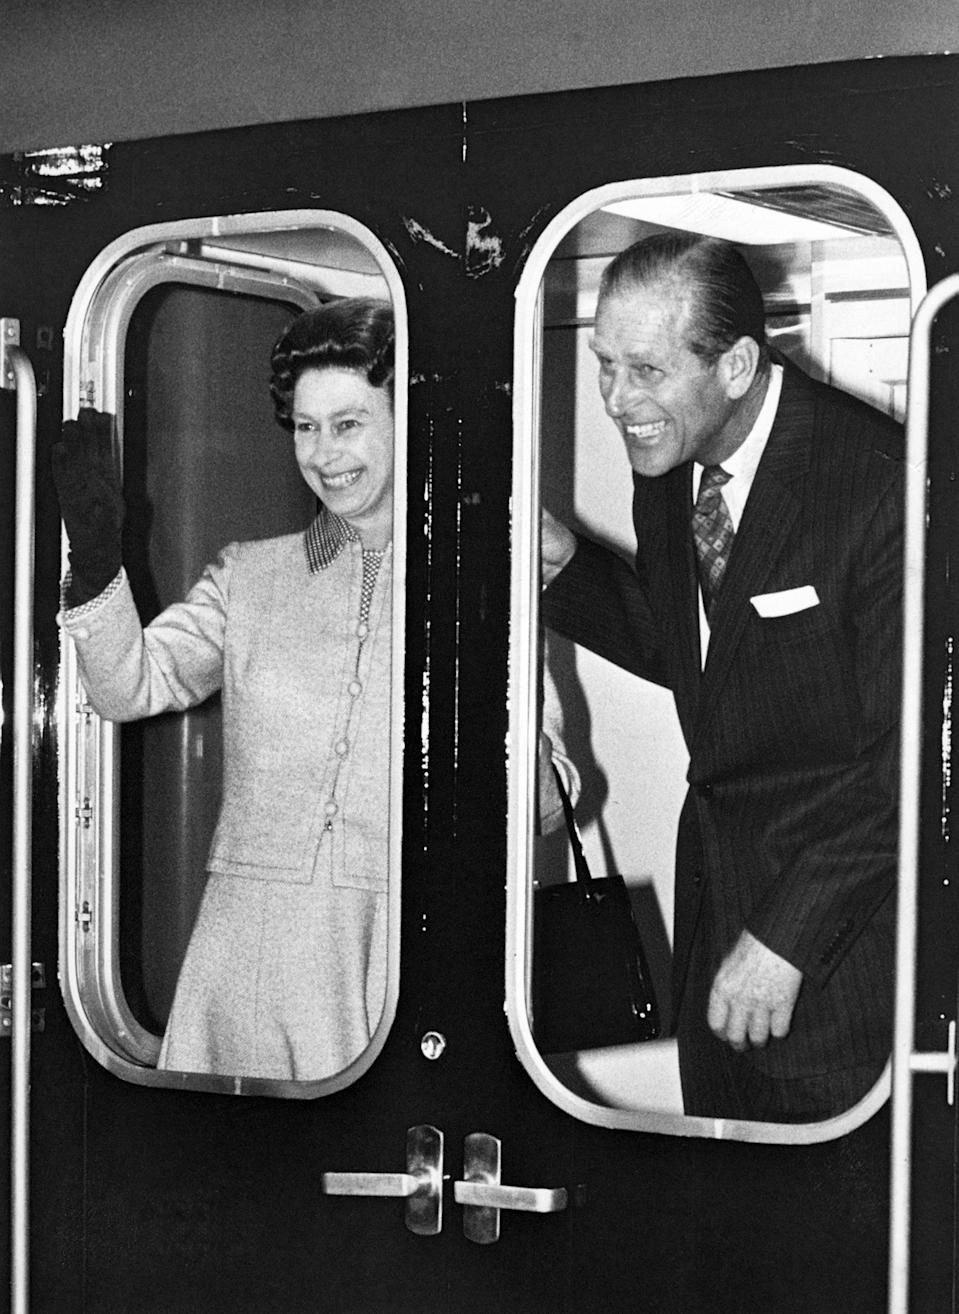 <p>The Prince and his wife - who he affectionately called 'cabbage' - made time for fun while on official royal duty. Here the pair grin and wave madly from a train in May 1977. Photo: Getty Images.</p>